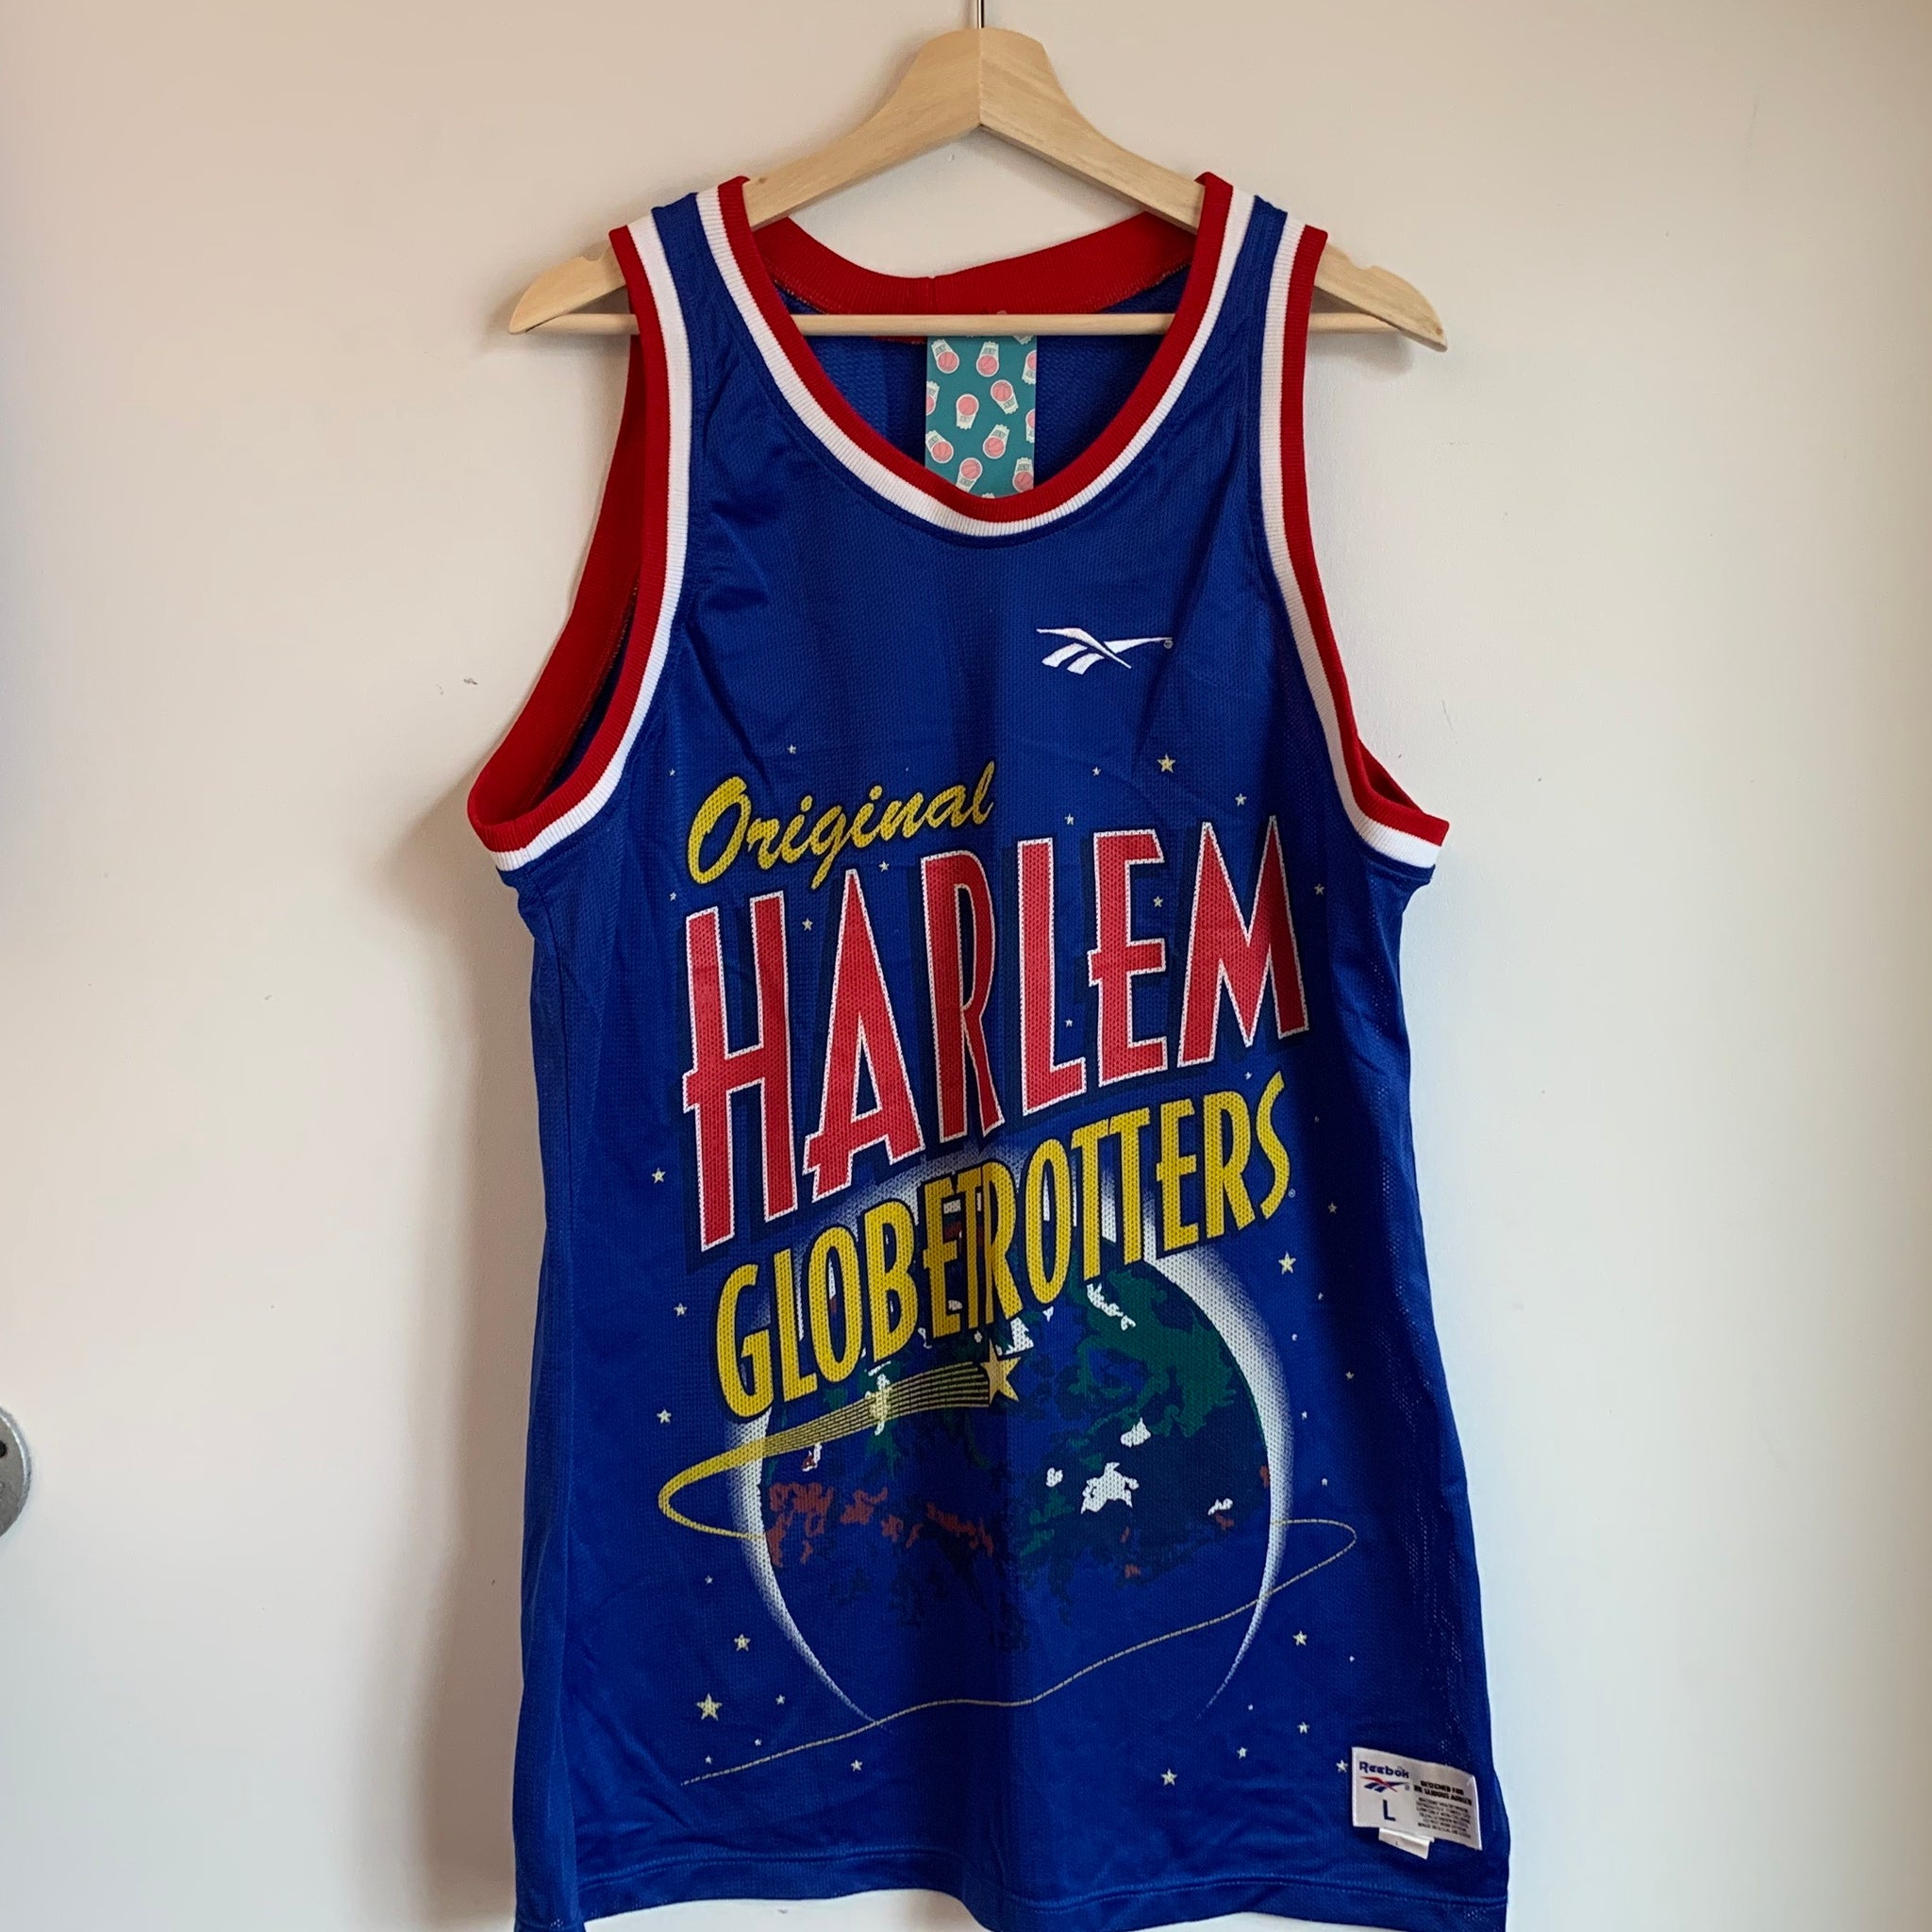 Reebok Billy Ray Hobley Harlem Globetrotters Basketball Jersey